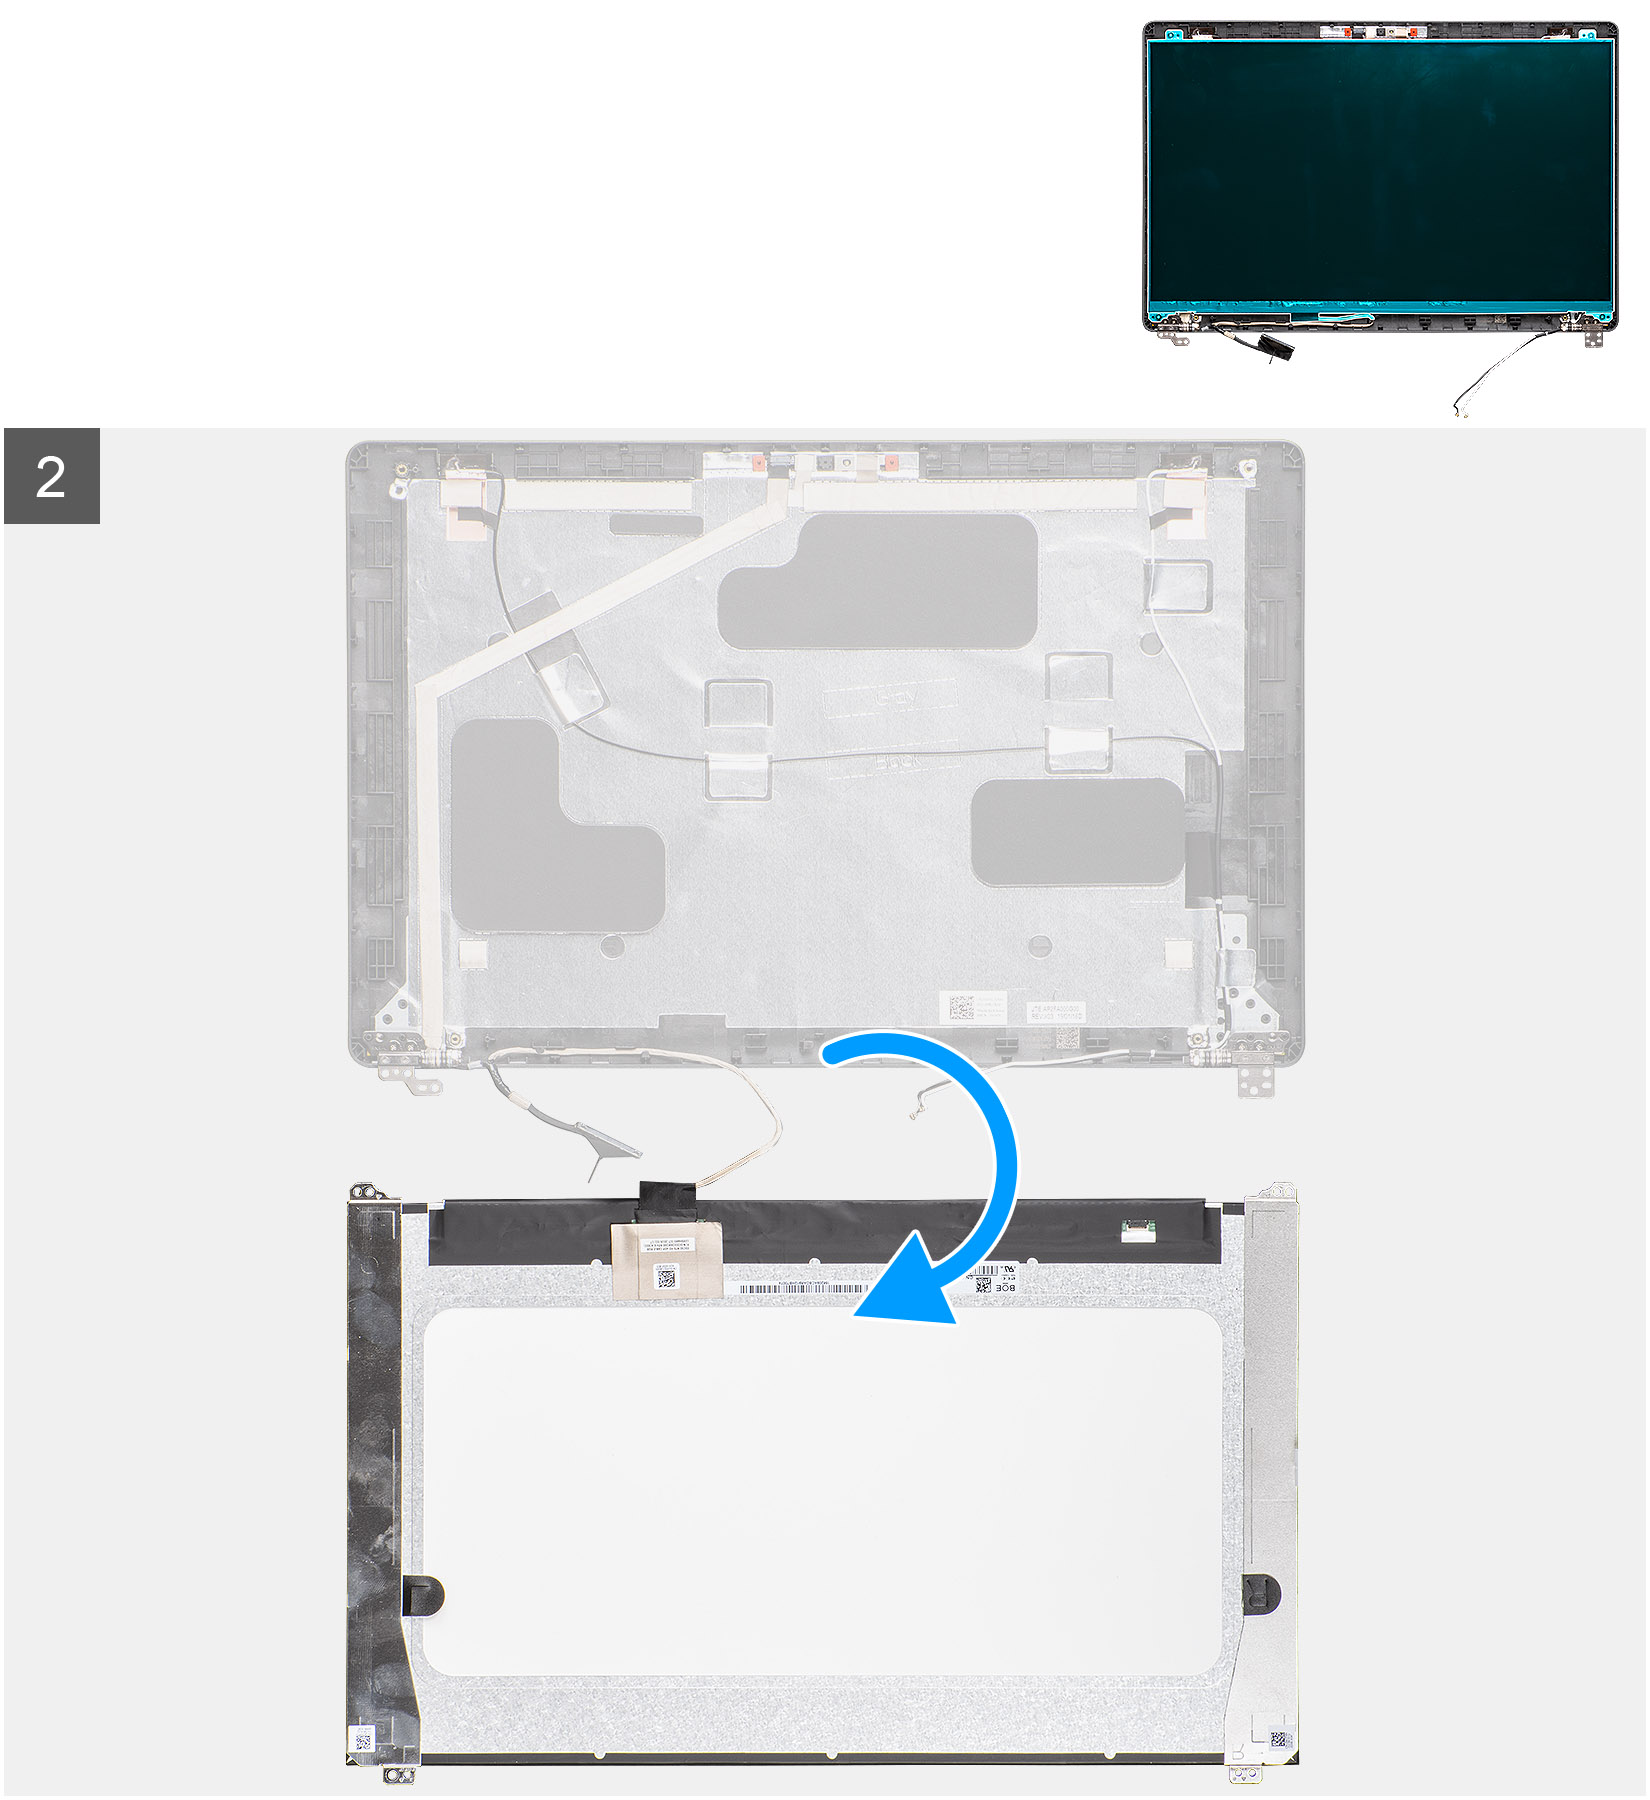 Removing the display panel